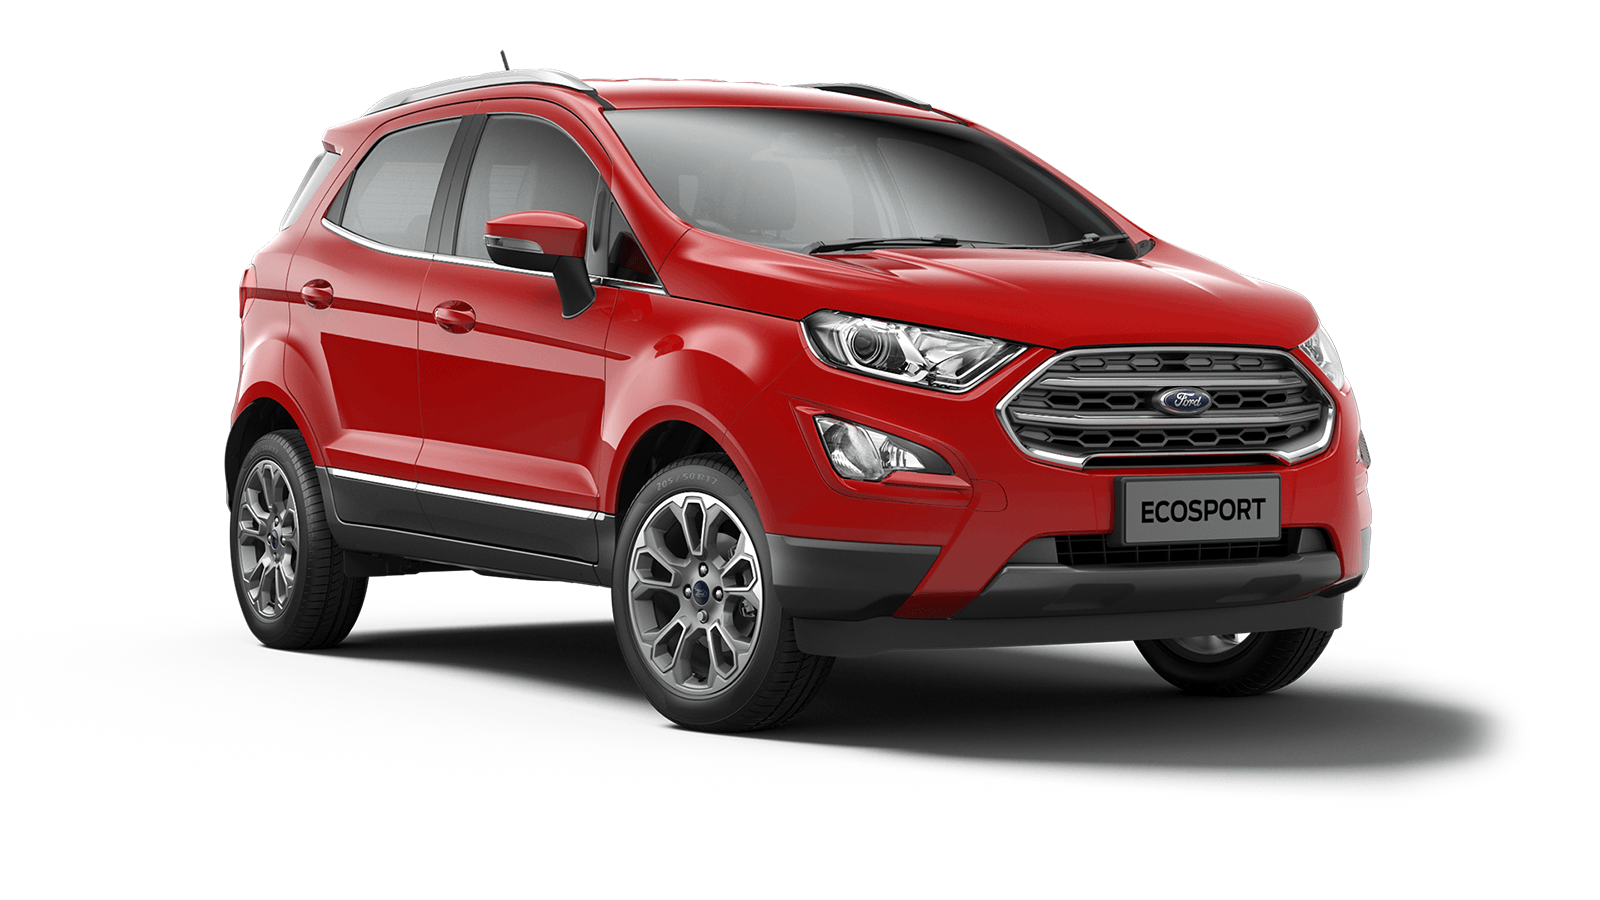 Ford EcoSport Titanium 1.5 EcoBlue 125PS at Browne & Day